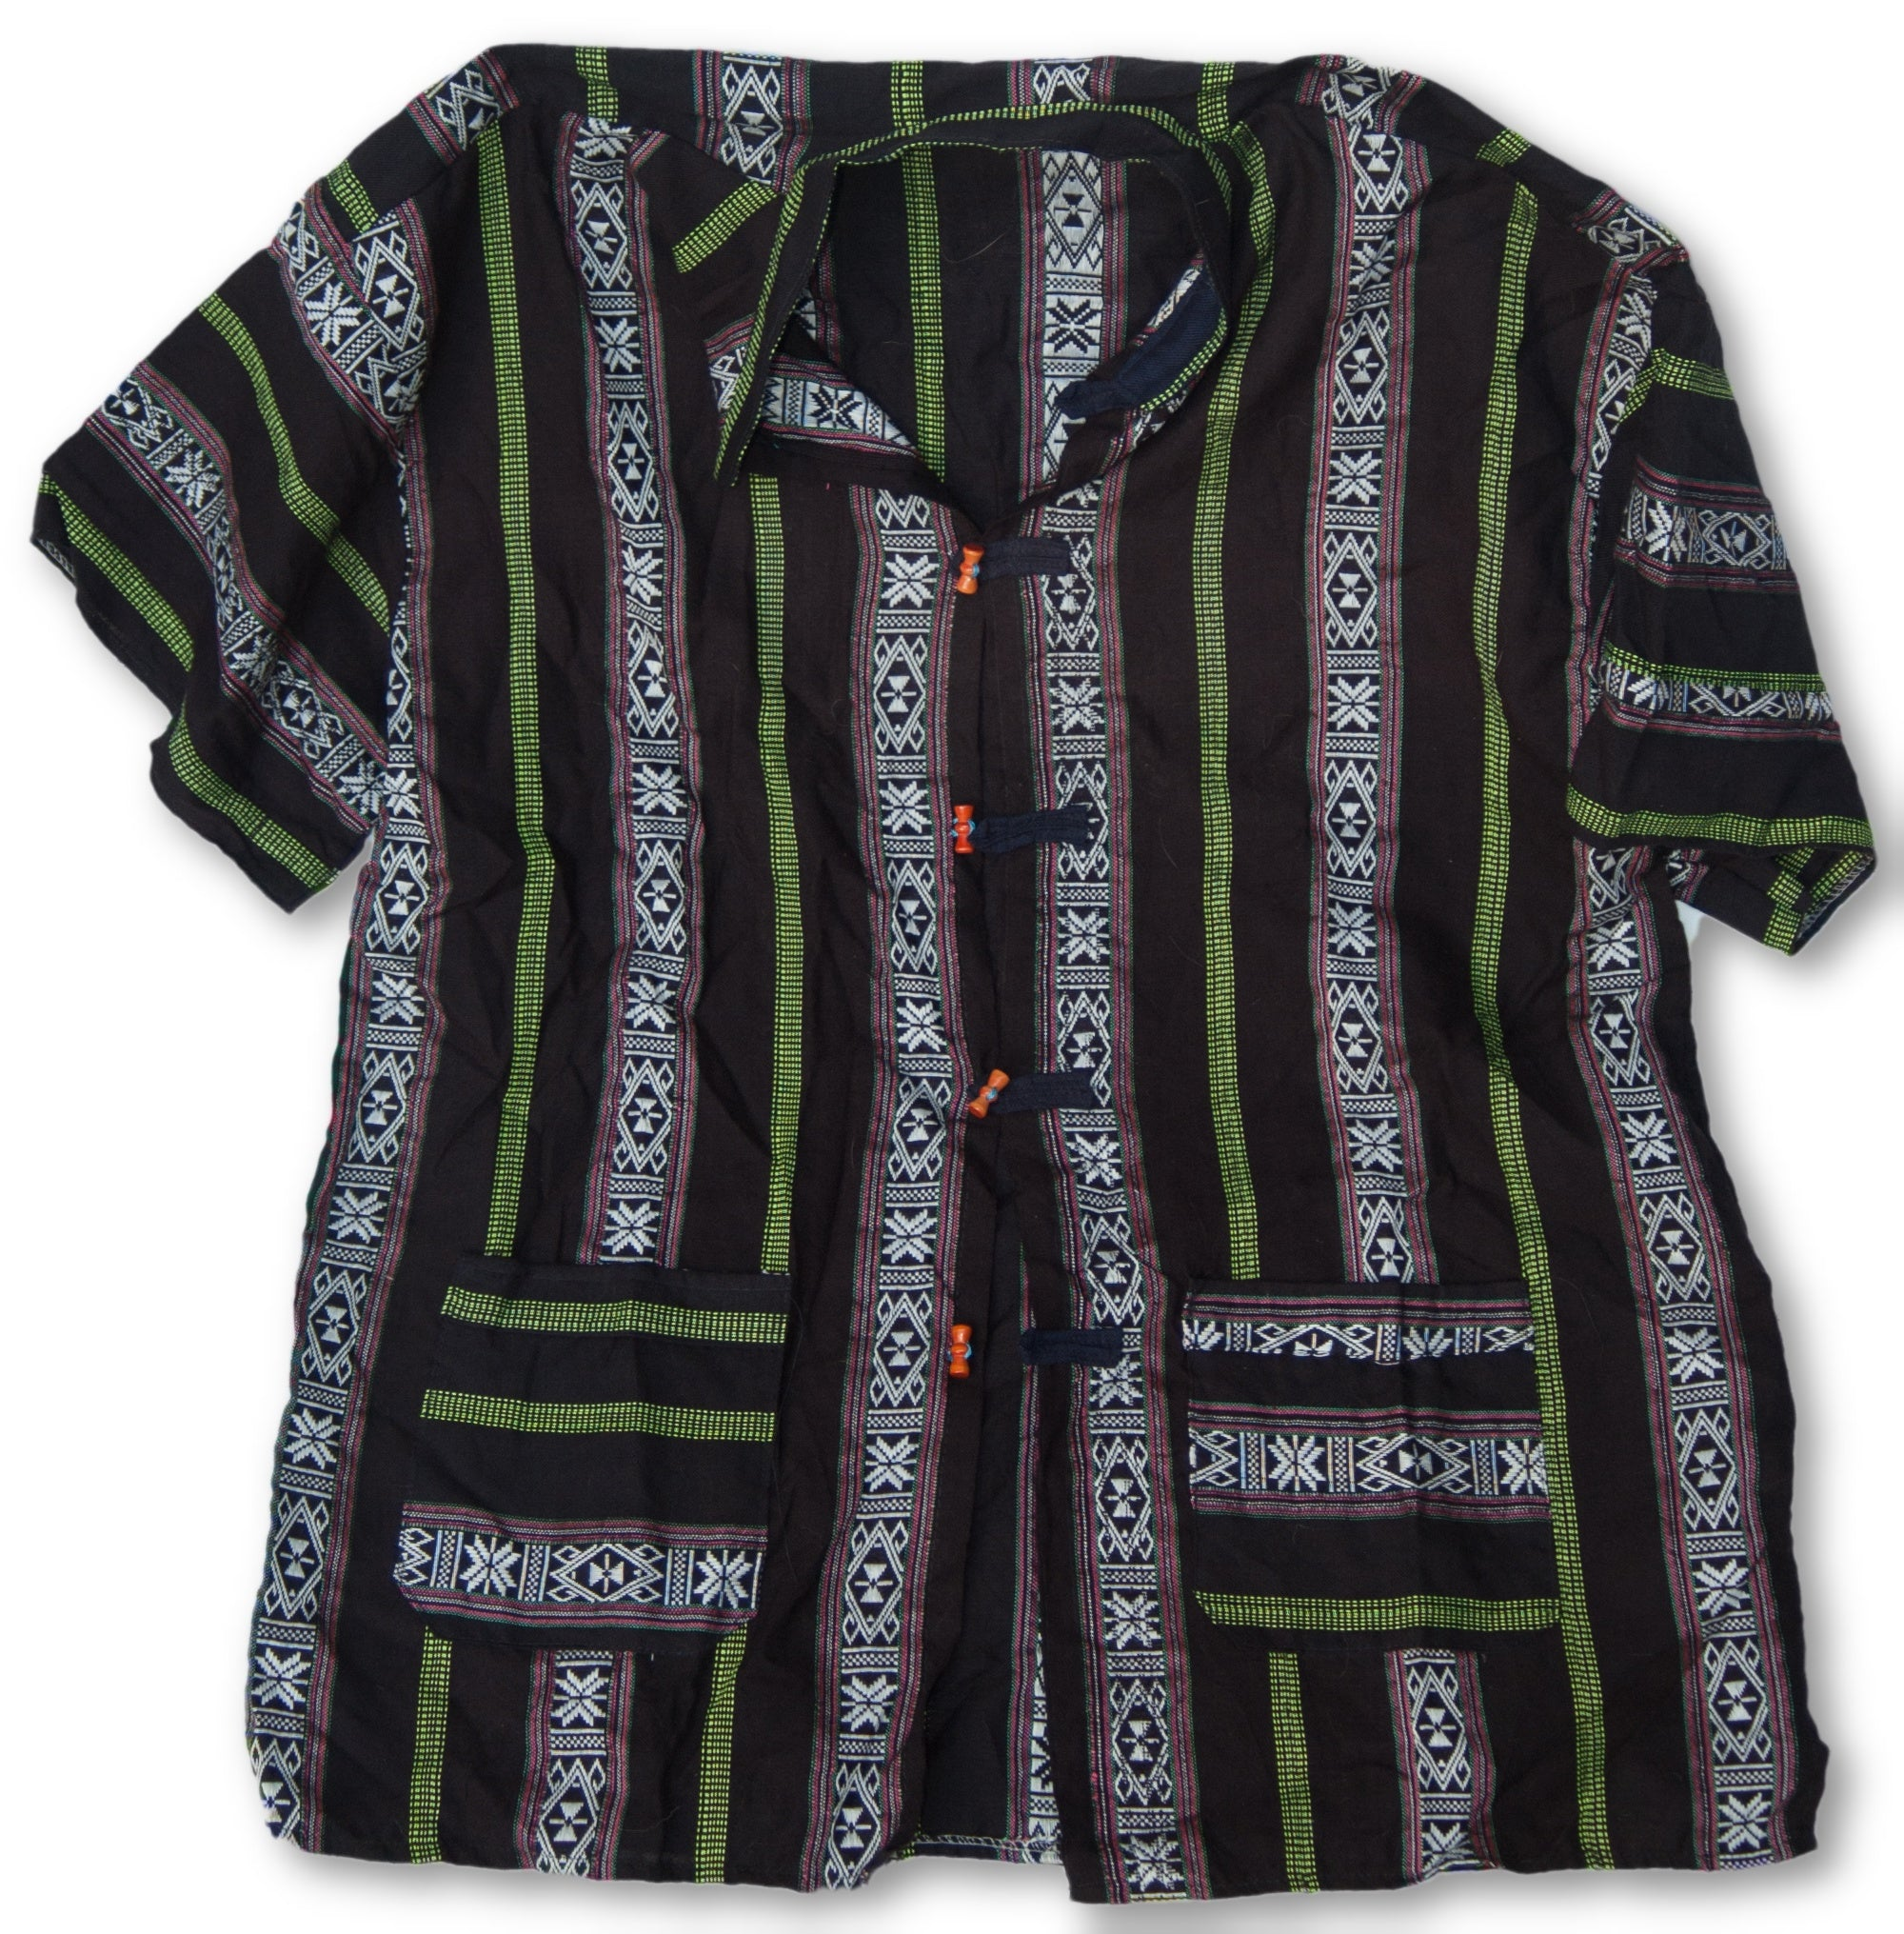 Thai Style Vietnam Short Sleeve Shirt Black White Green